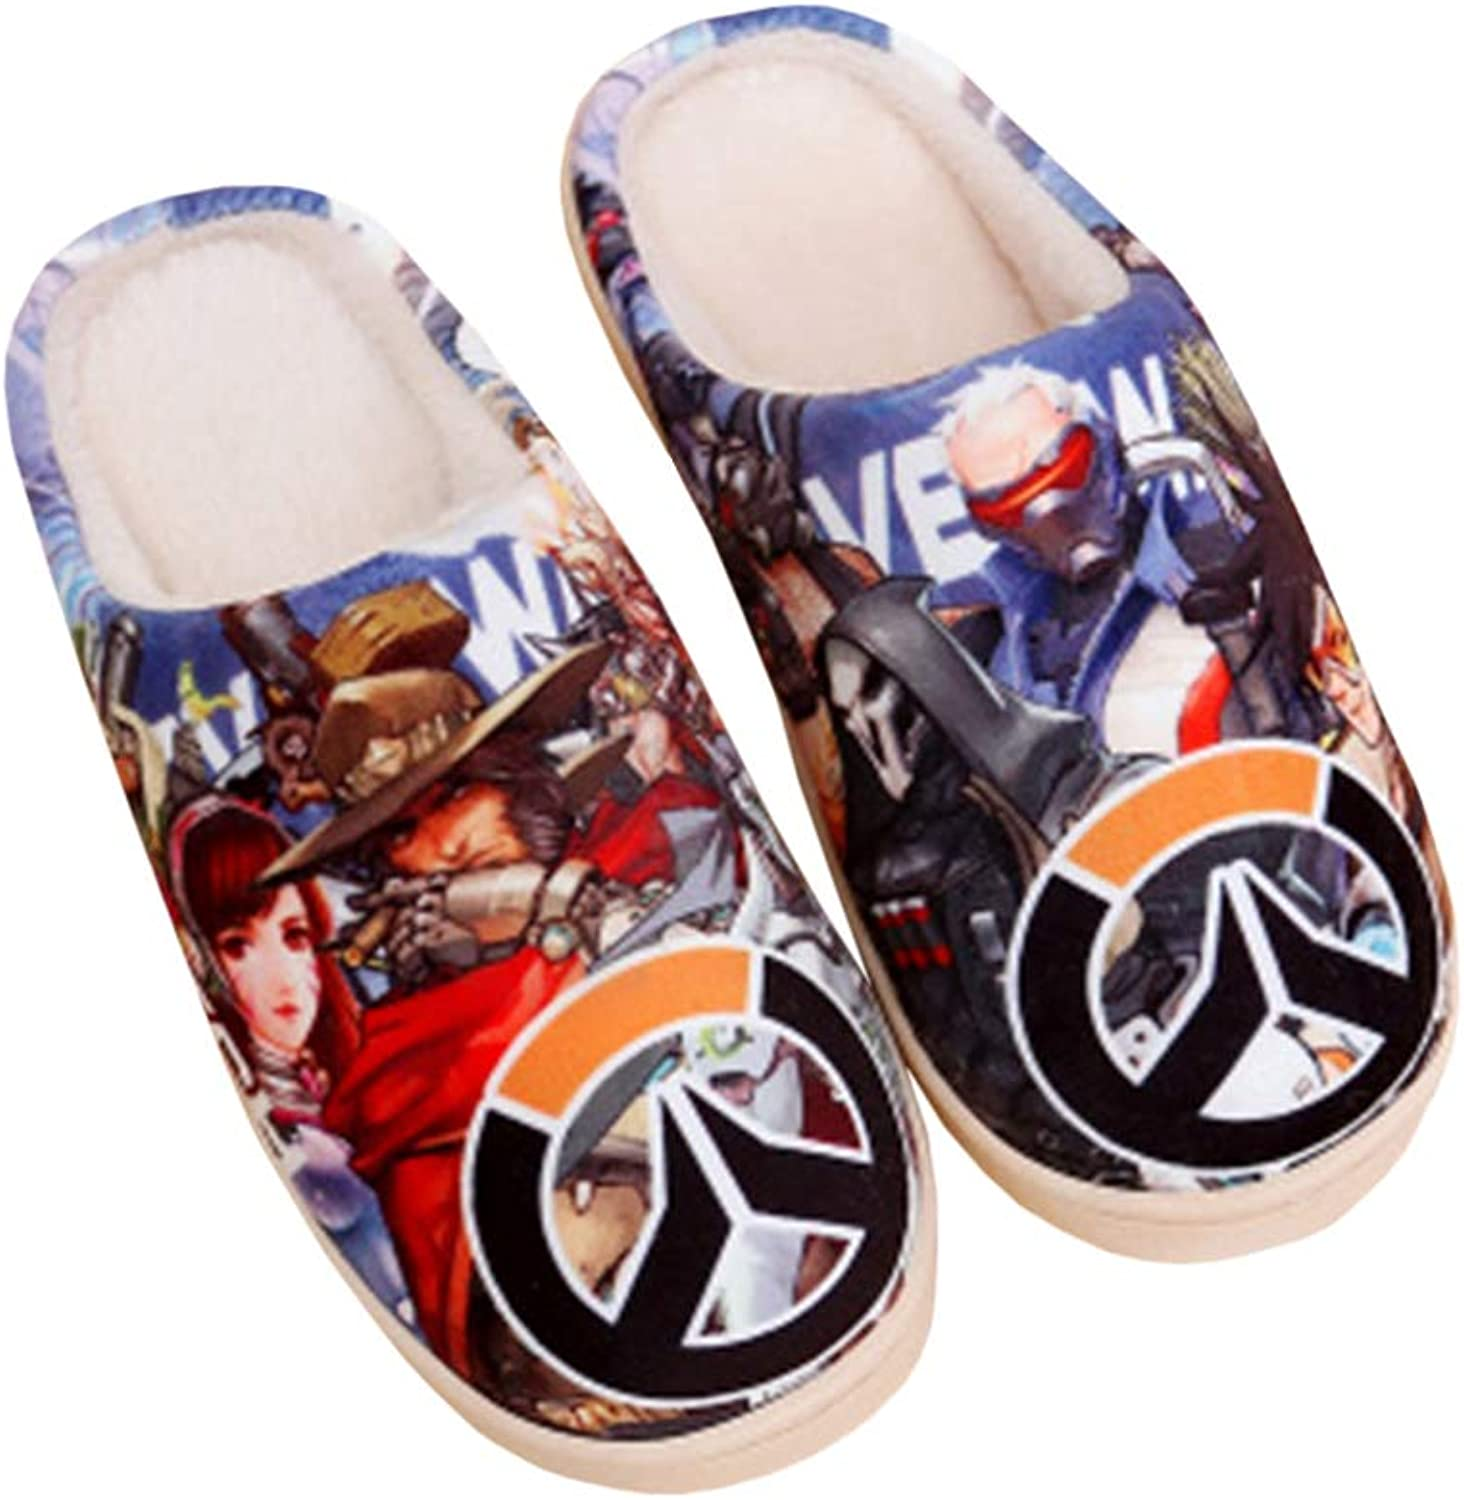 Cotton Slippers Cartoon Anime Printing Cute Plush Thicken shoes Warm Unisex Home Winter Anti-Slip Can Washable Slipper